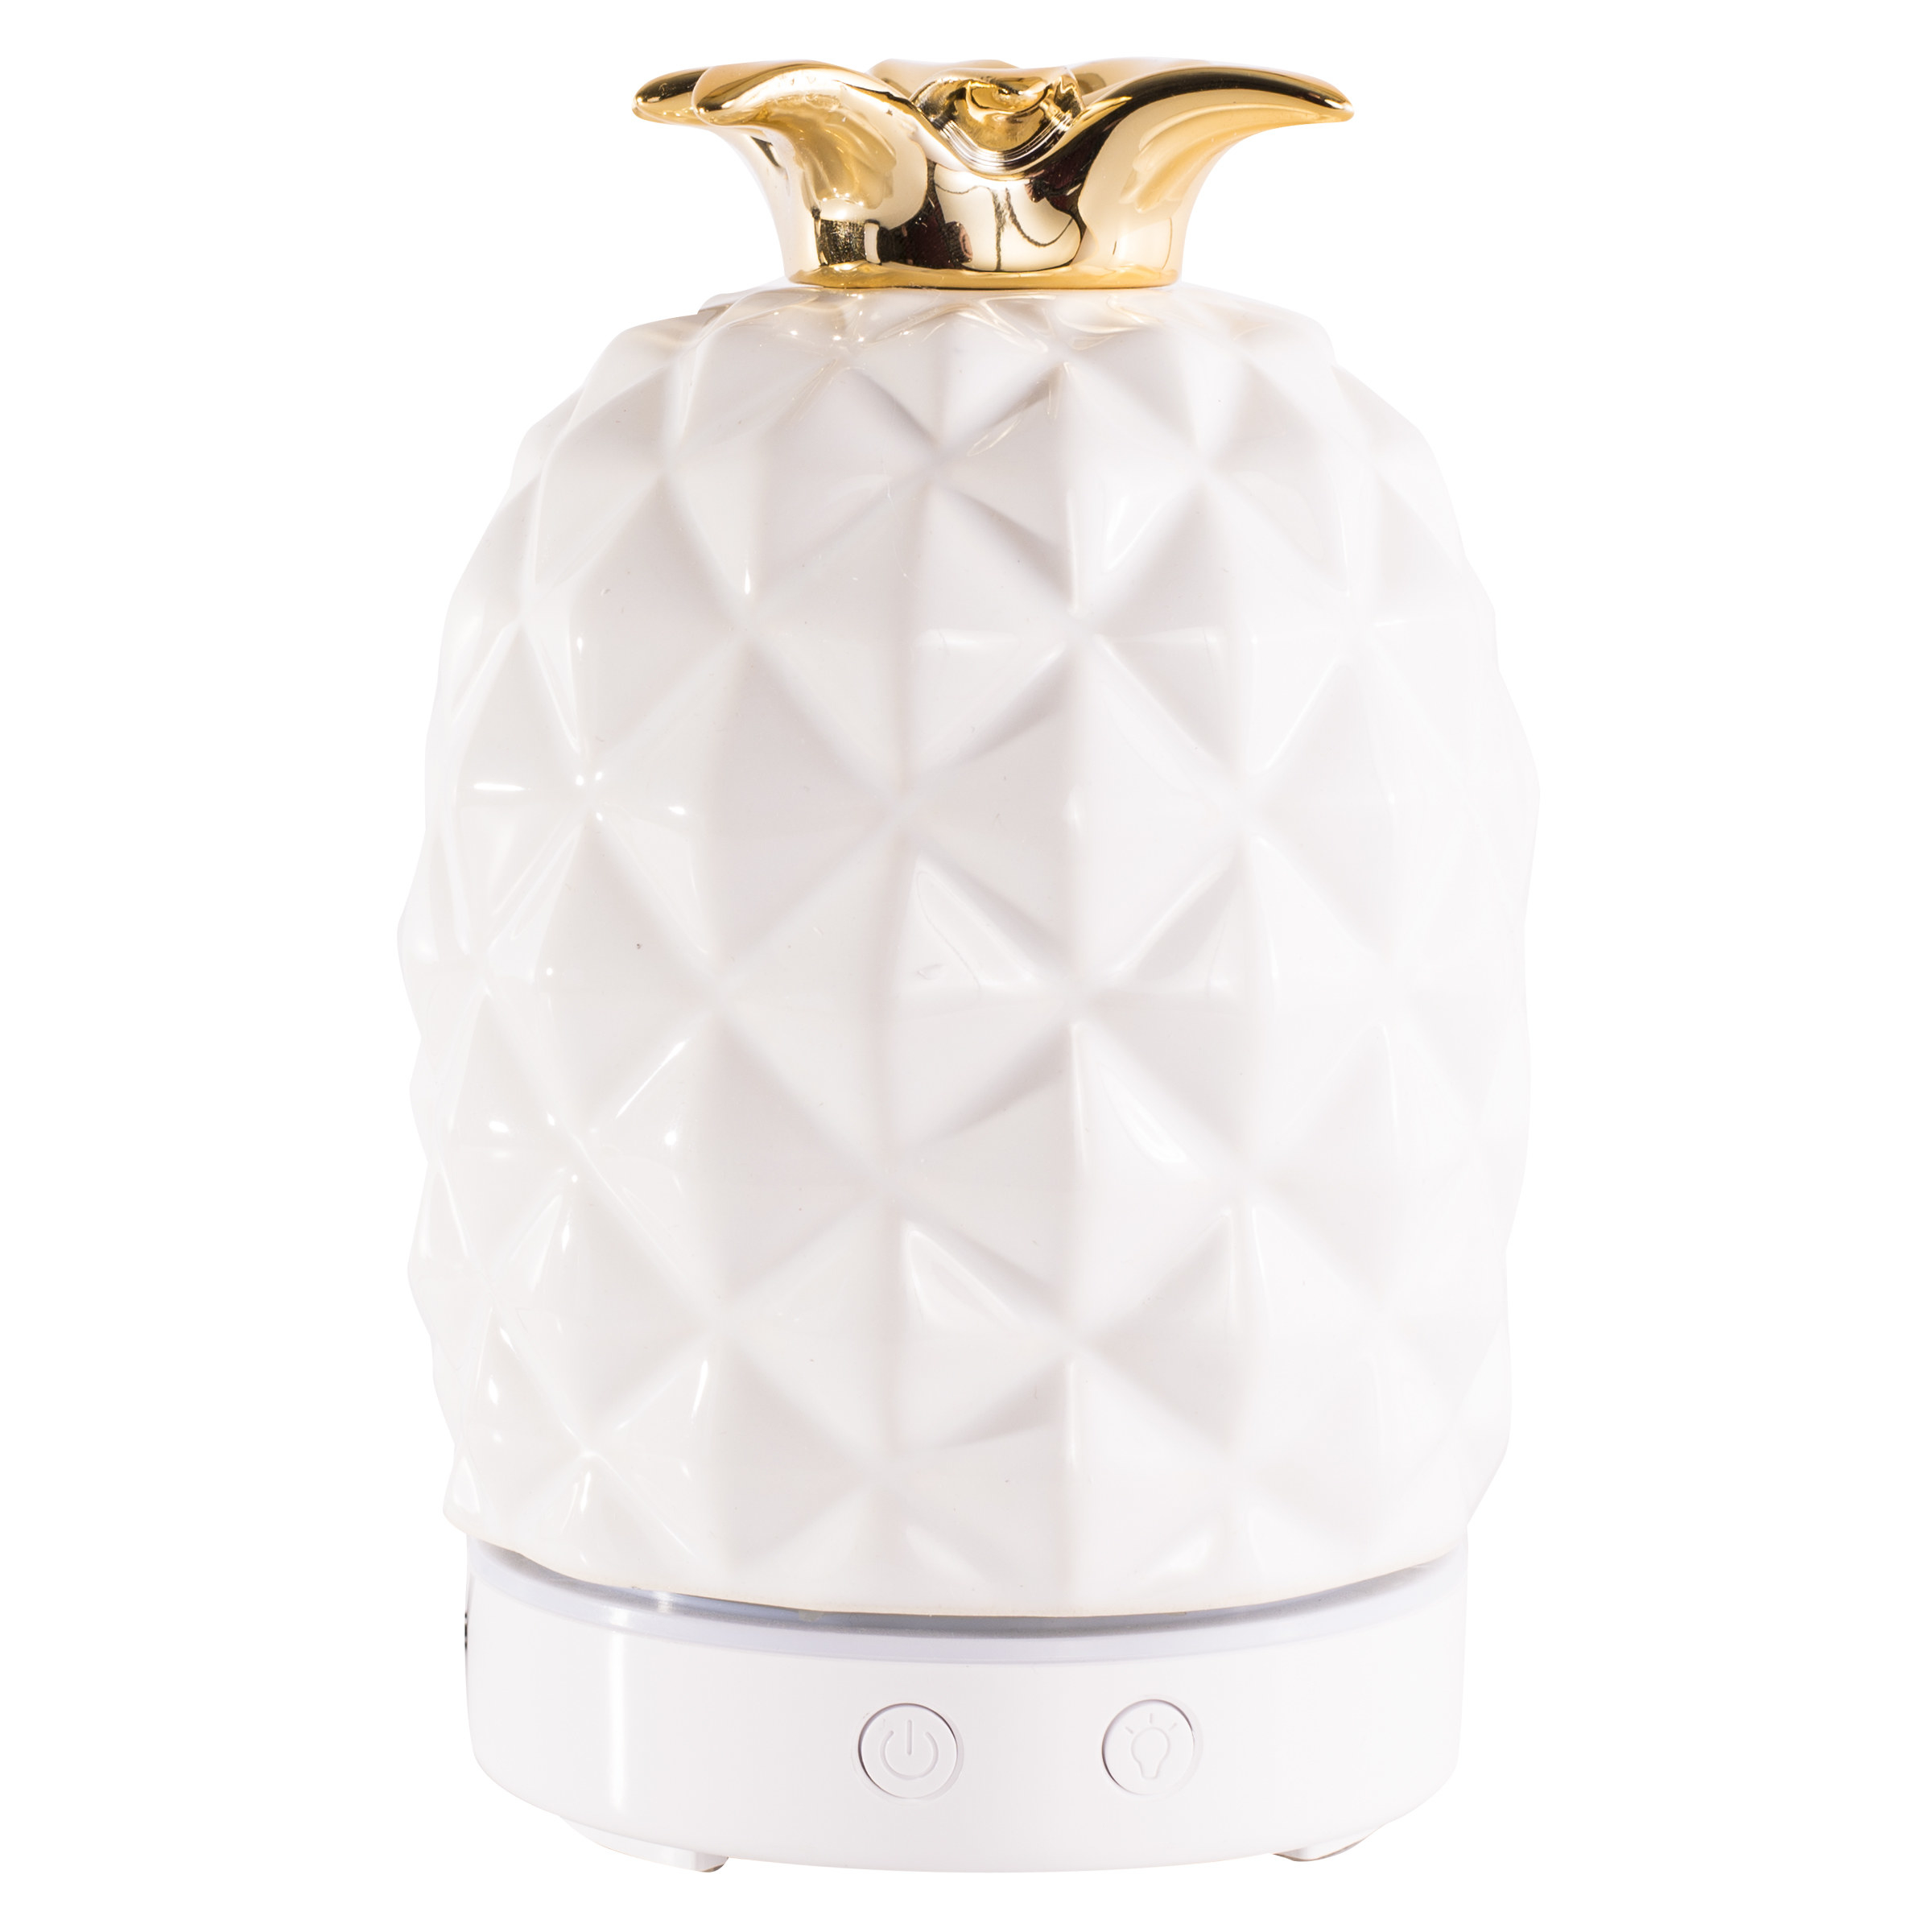 A white pineapple diffuser with a gold top